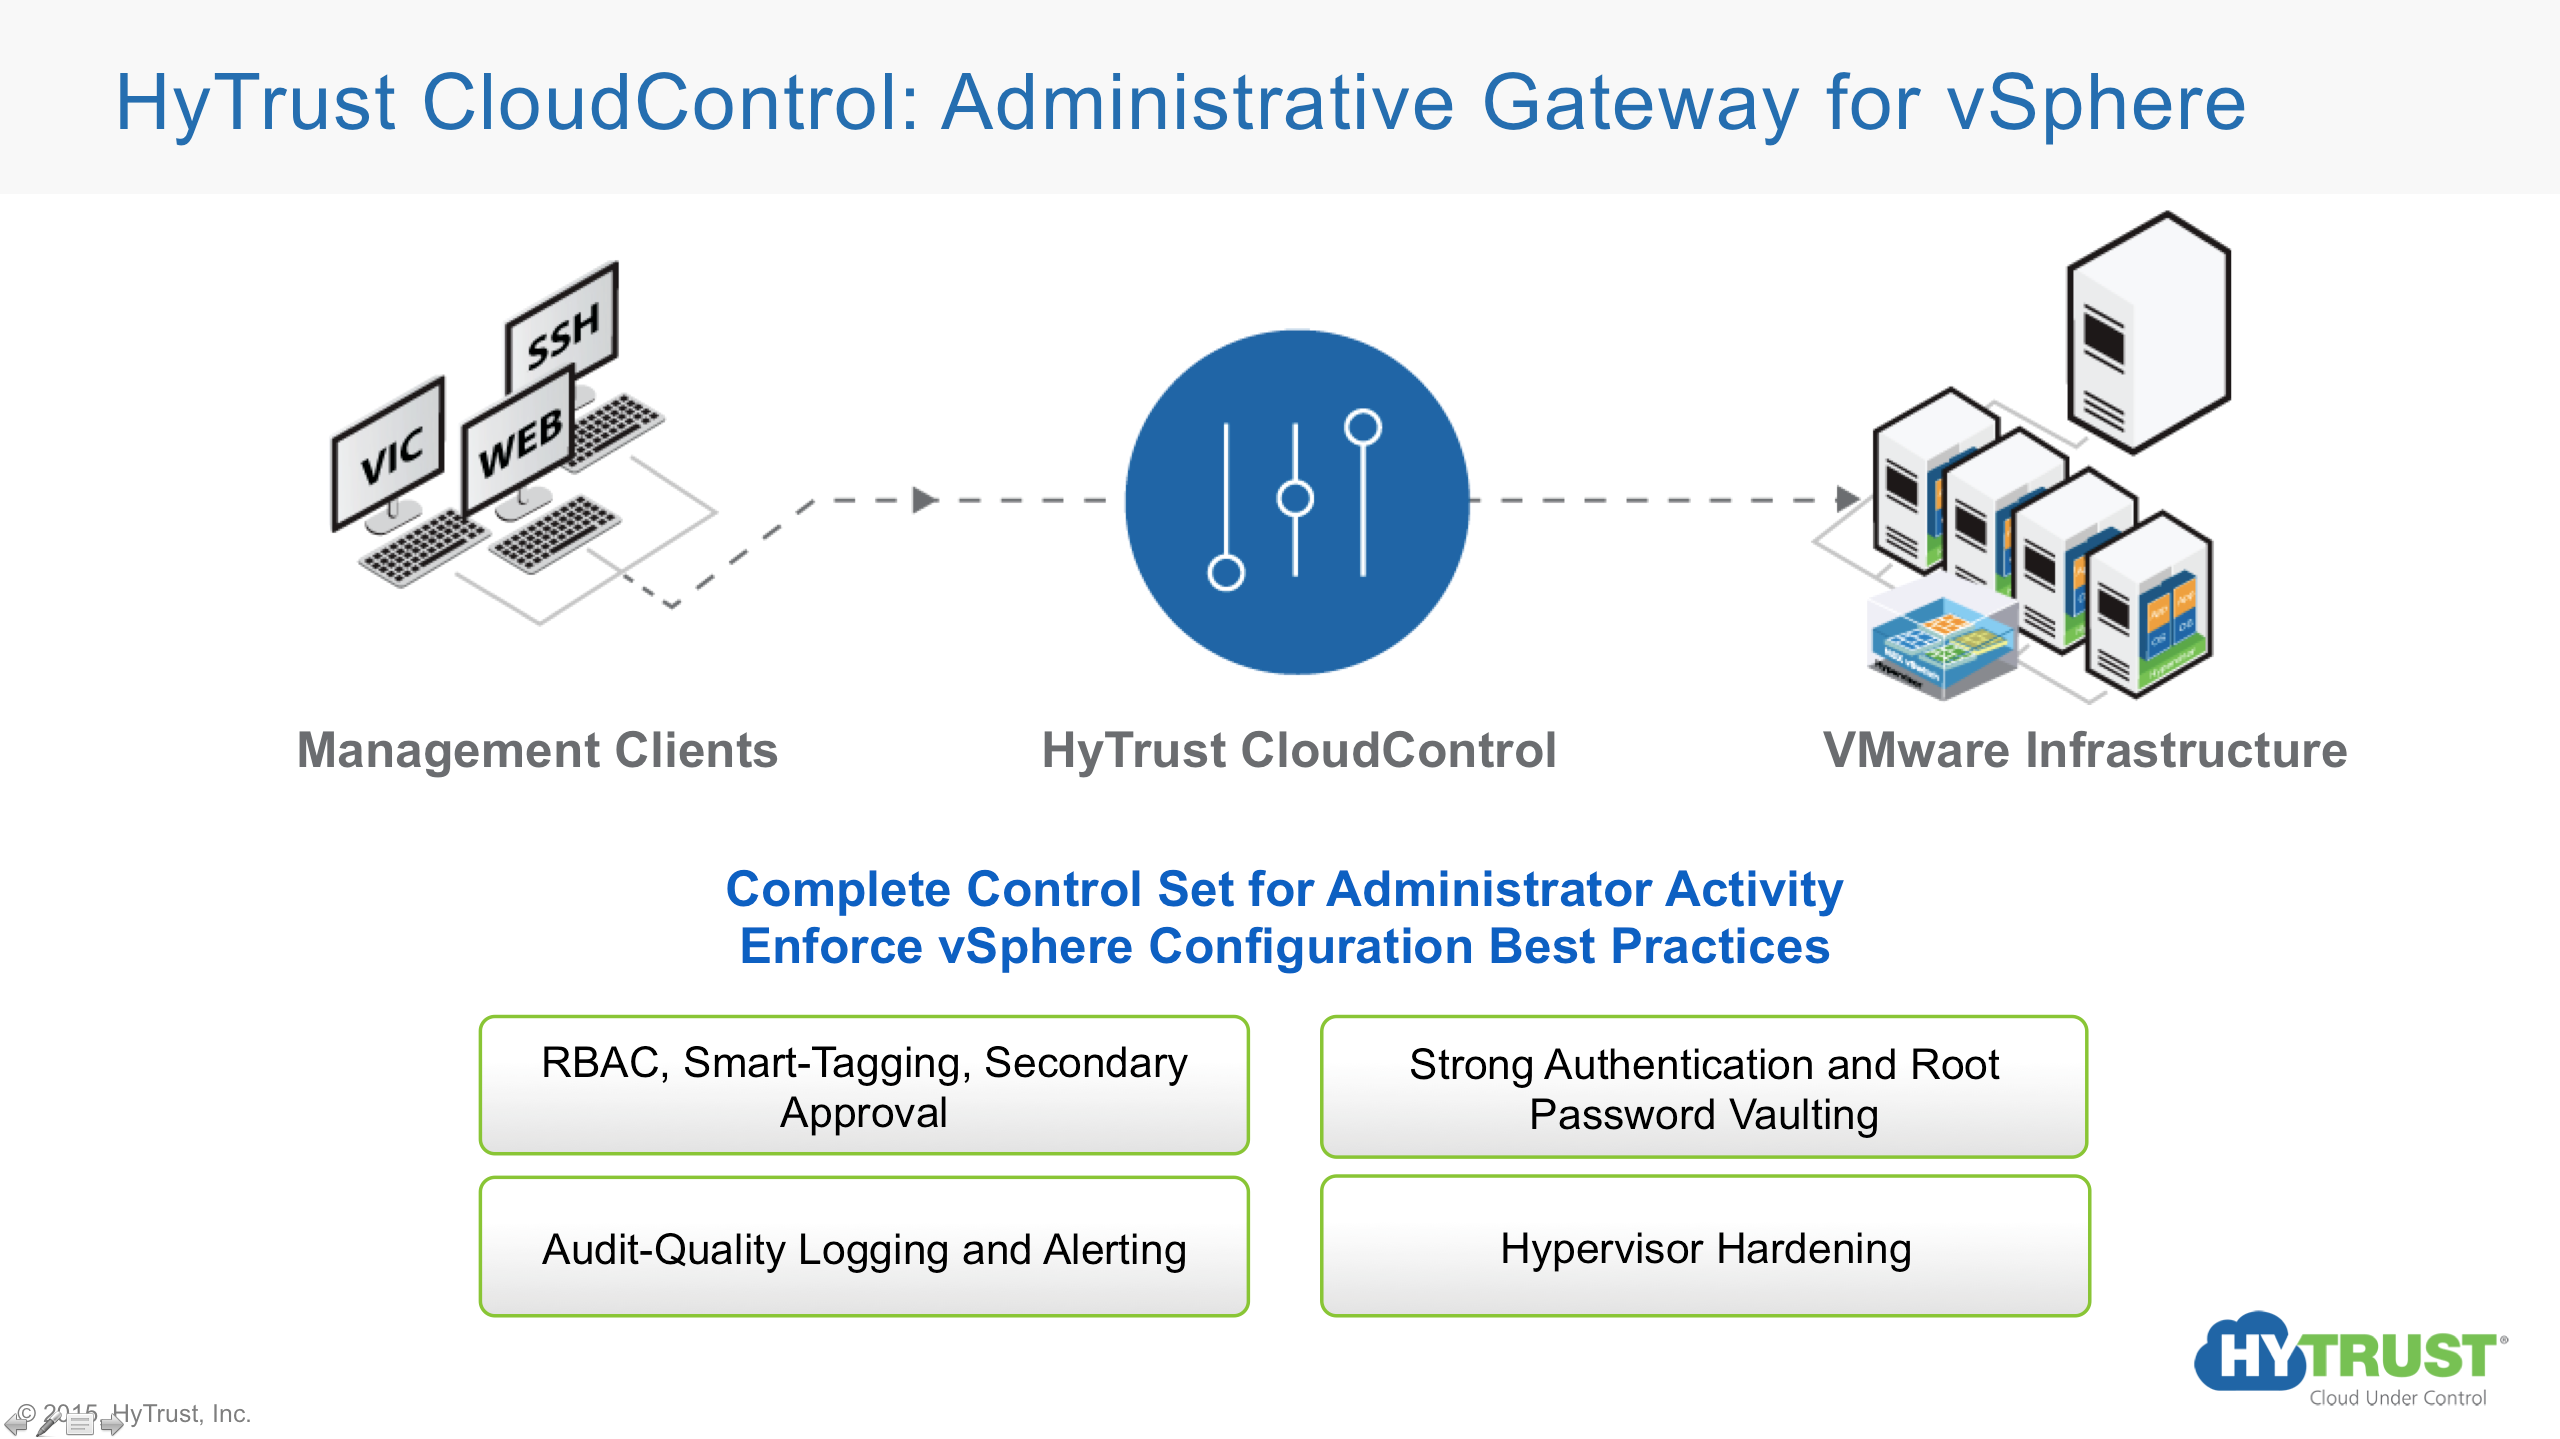 HyTrustCloudControl